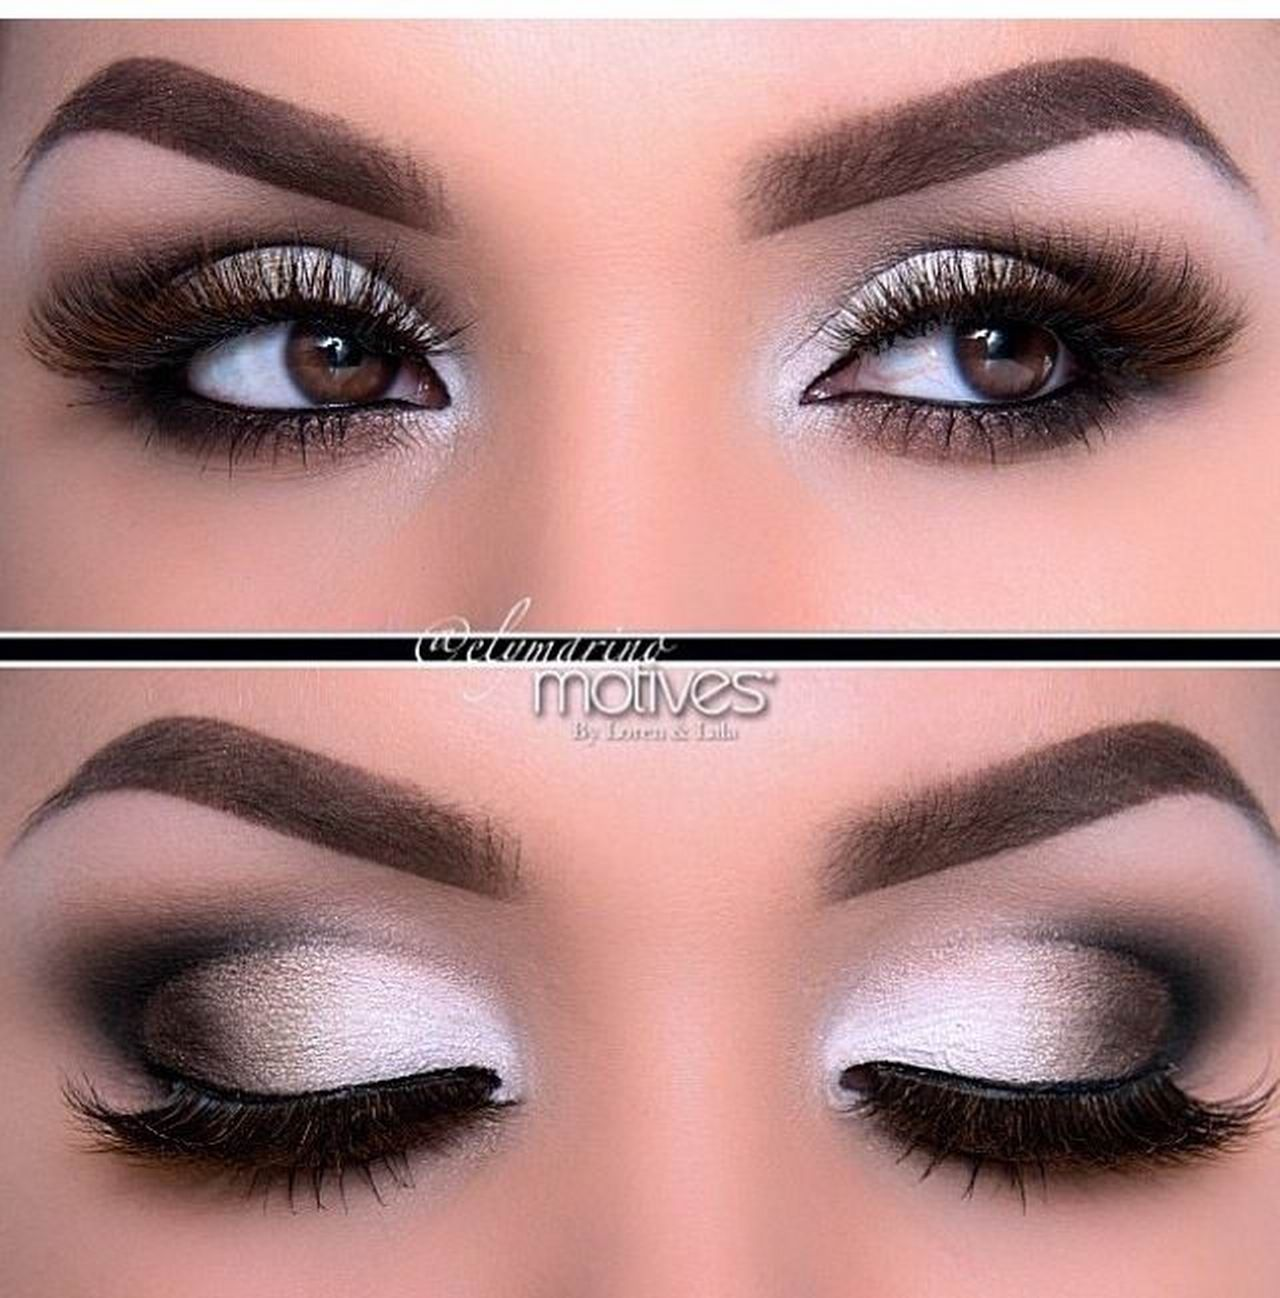 Make Up For Brown Eyes | Beauty | Pinterest | Maquillaje, Vaca y Belleza